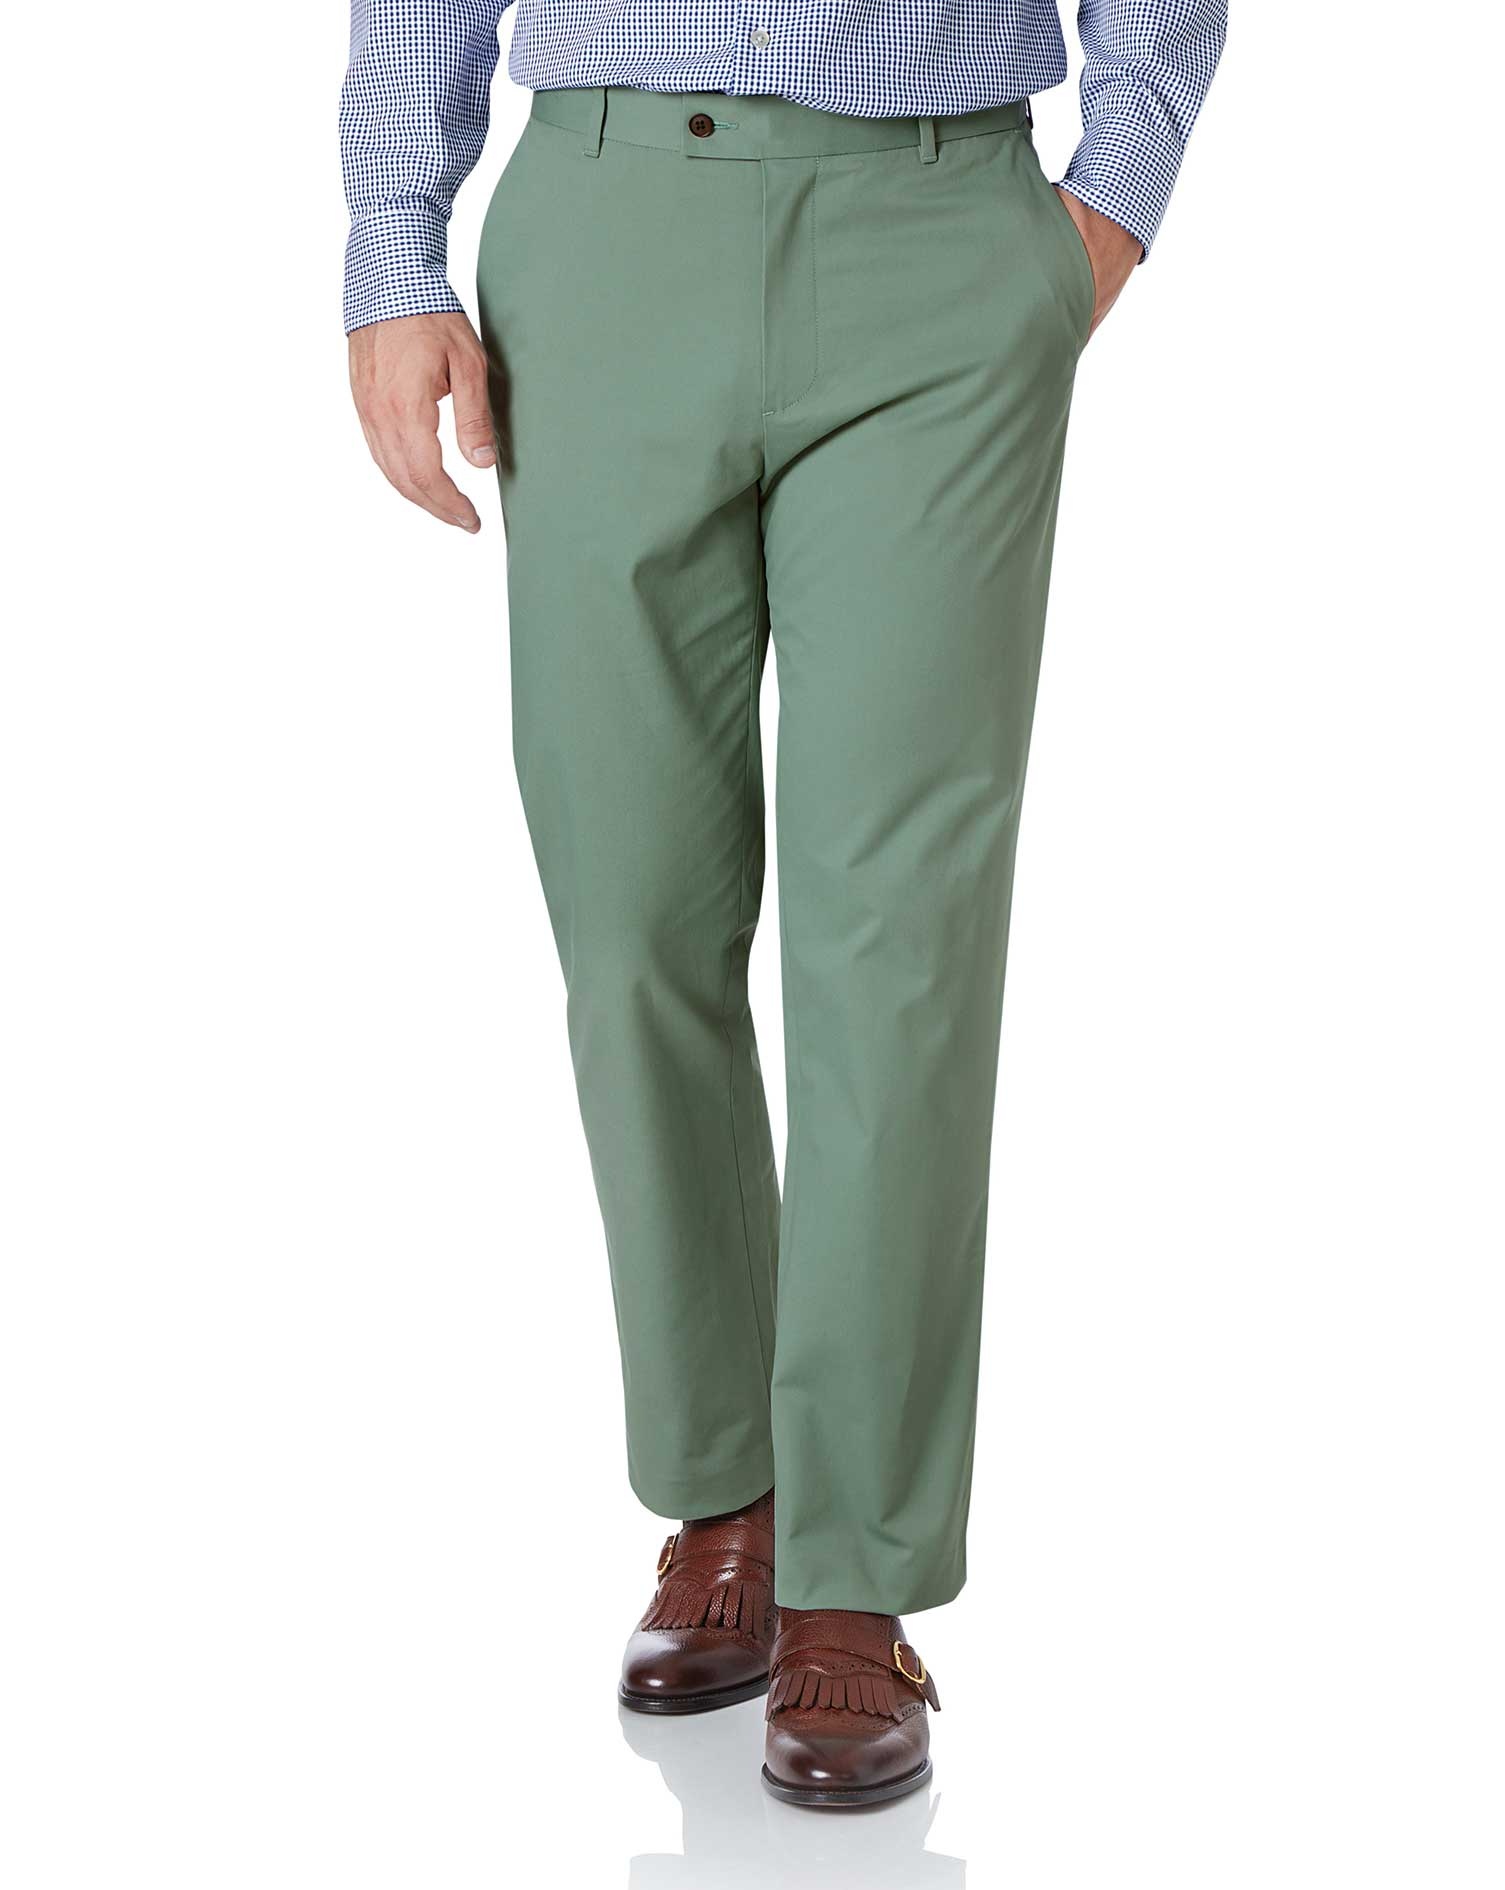 Light Green Classic Fit Stretch Cotton Chino Trousers Size W34 L30 by Charles Tyrwhitt